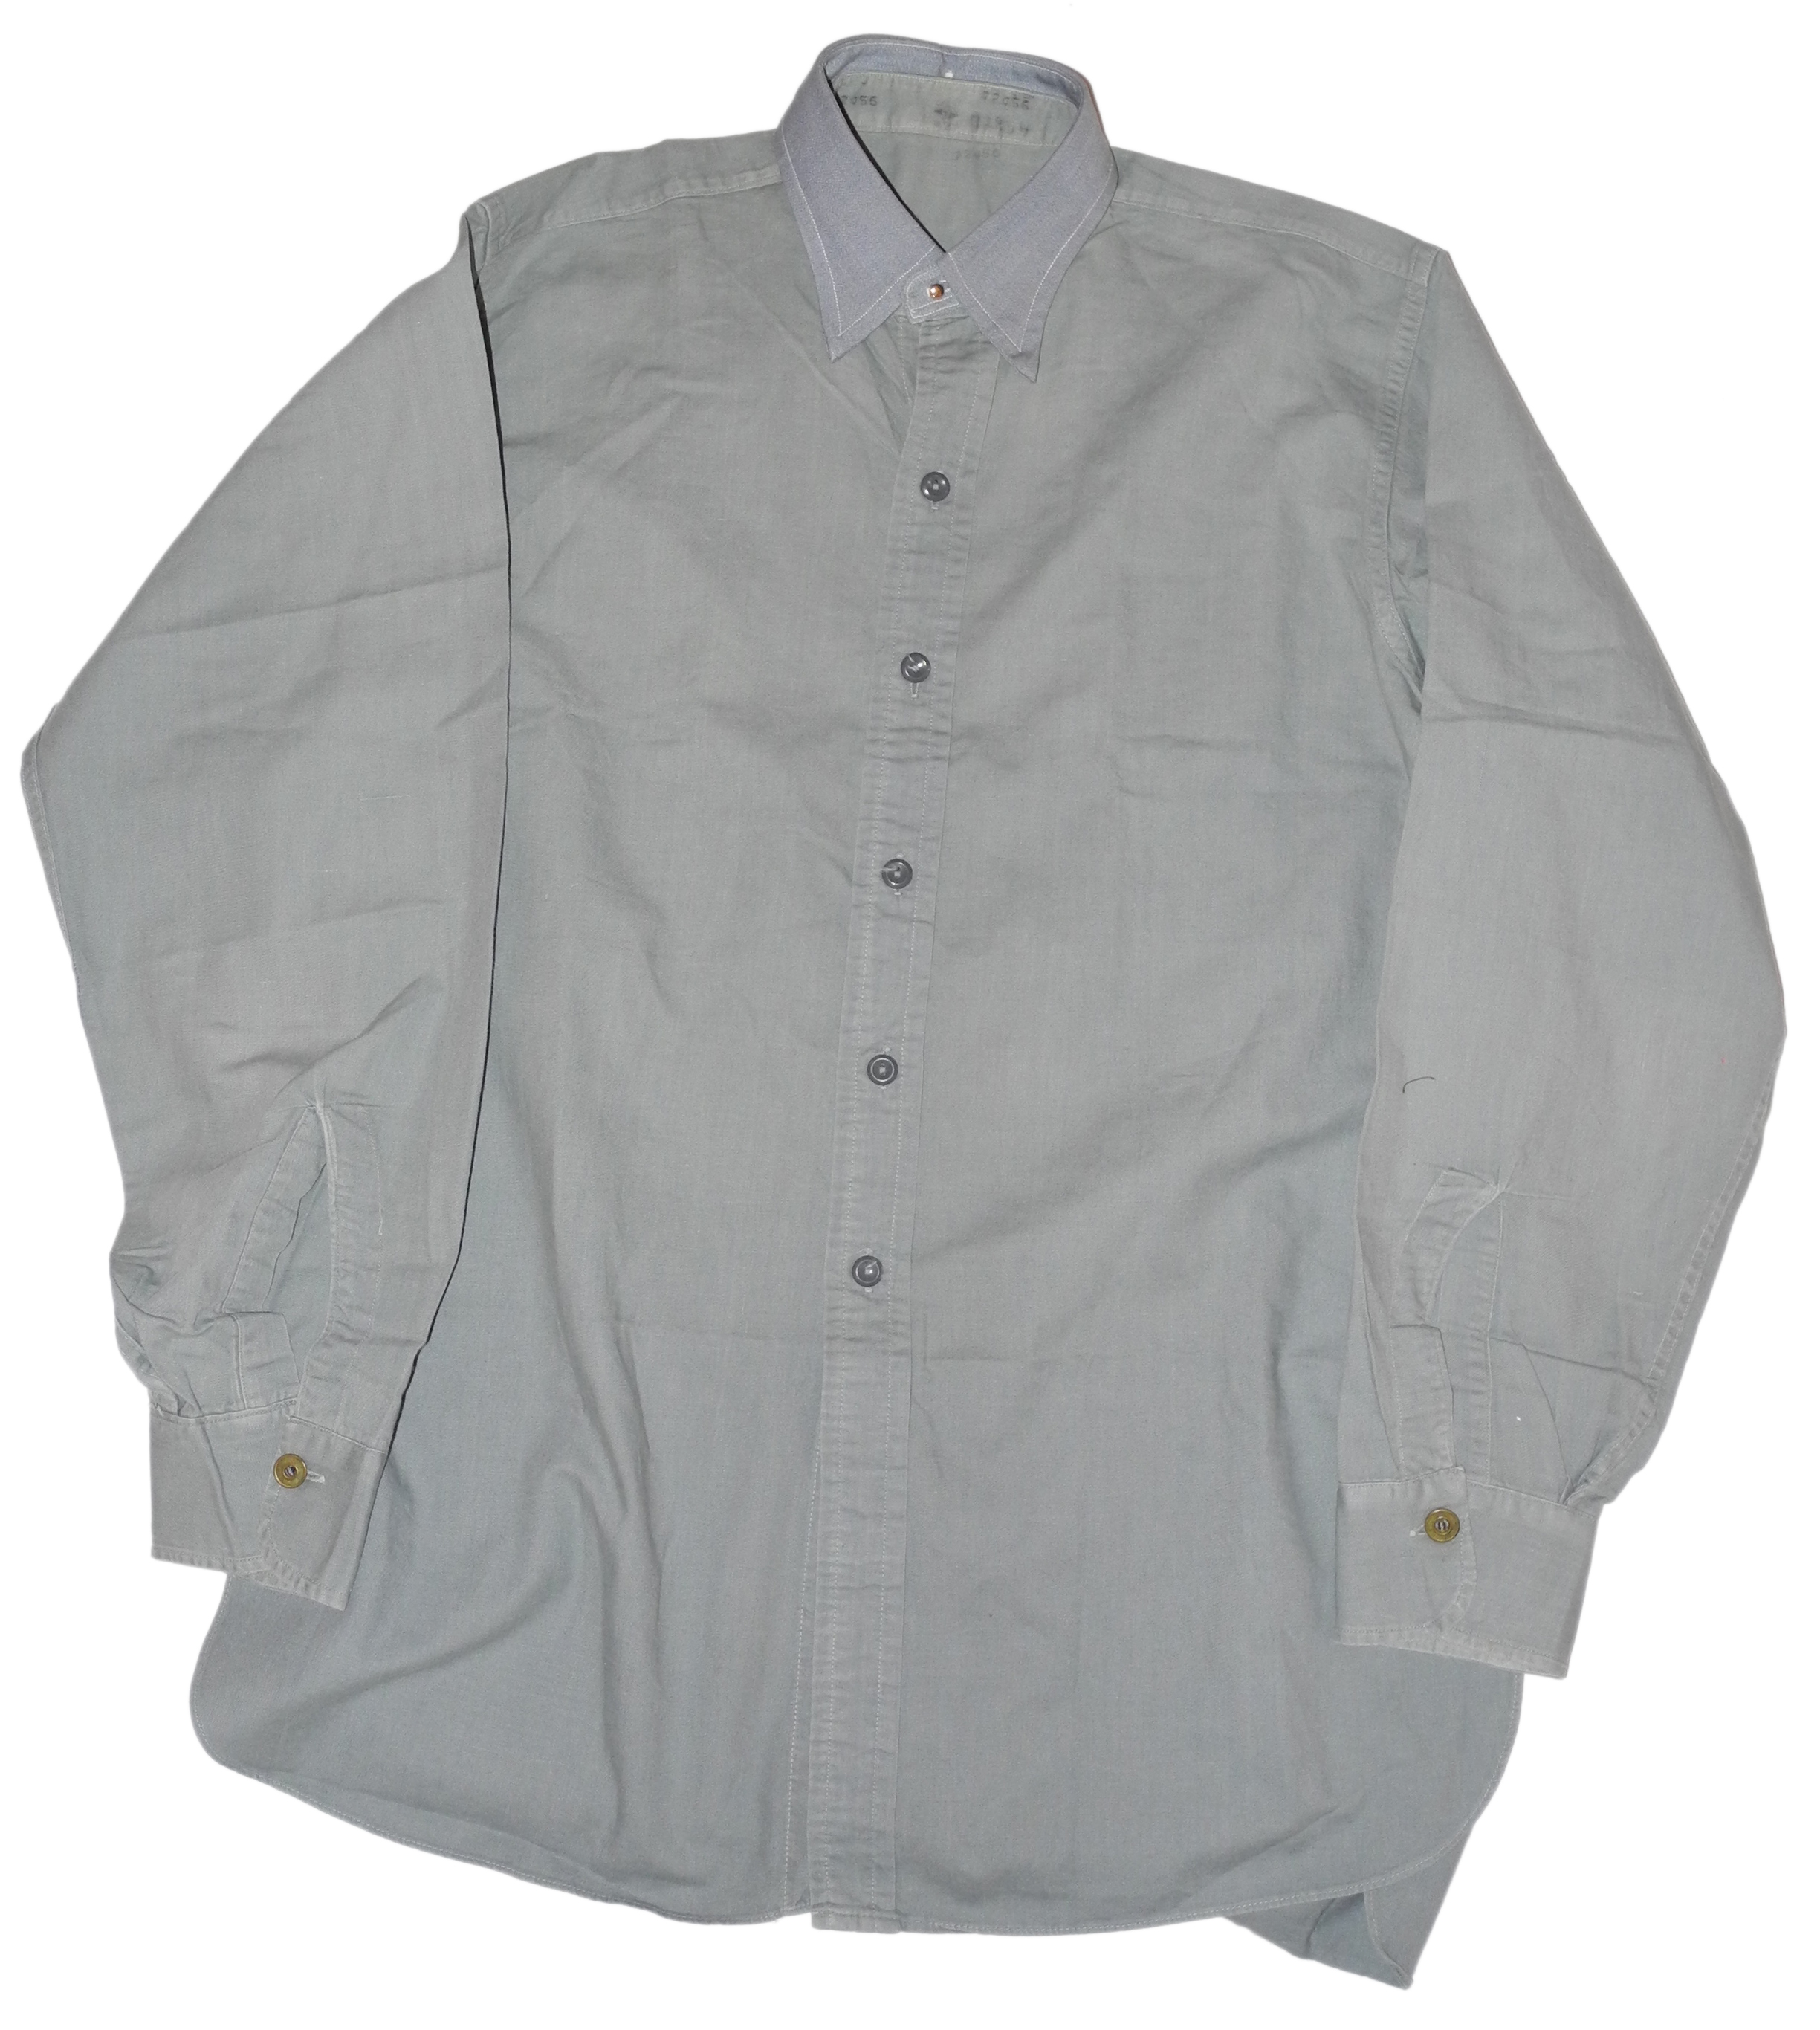 RAF shirt with collar and studs